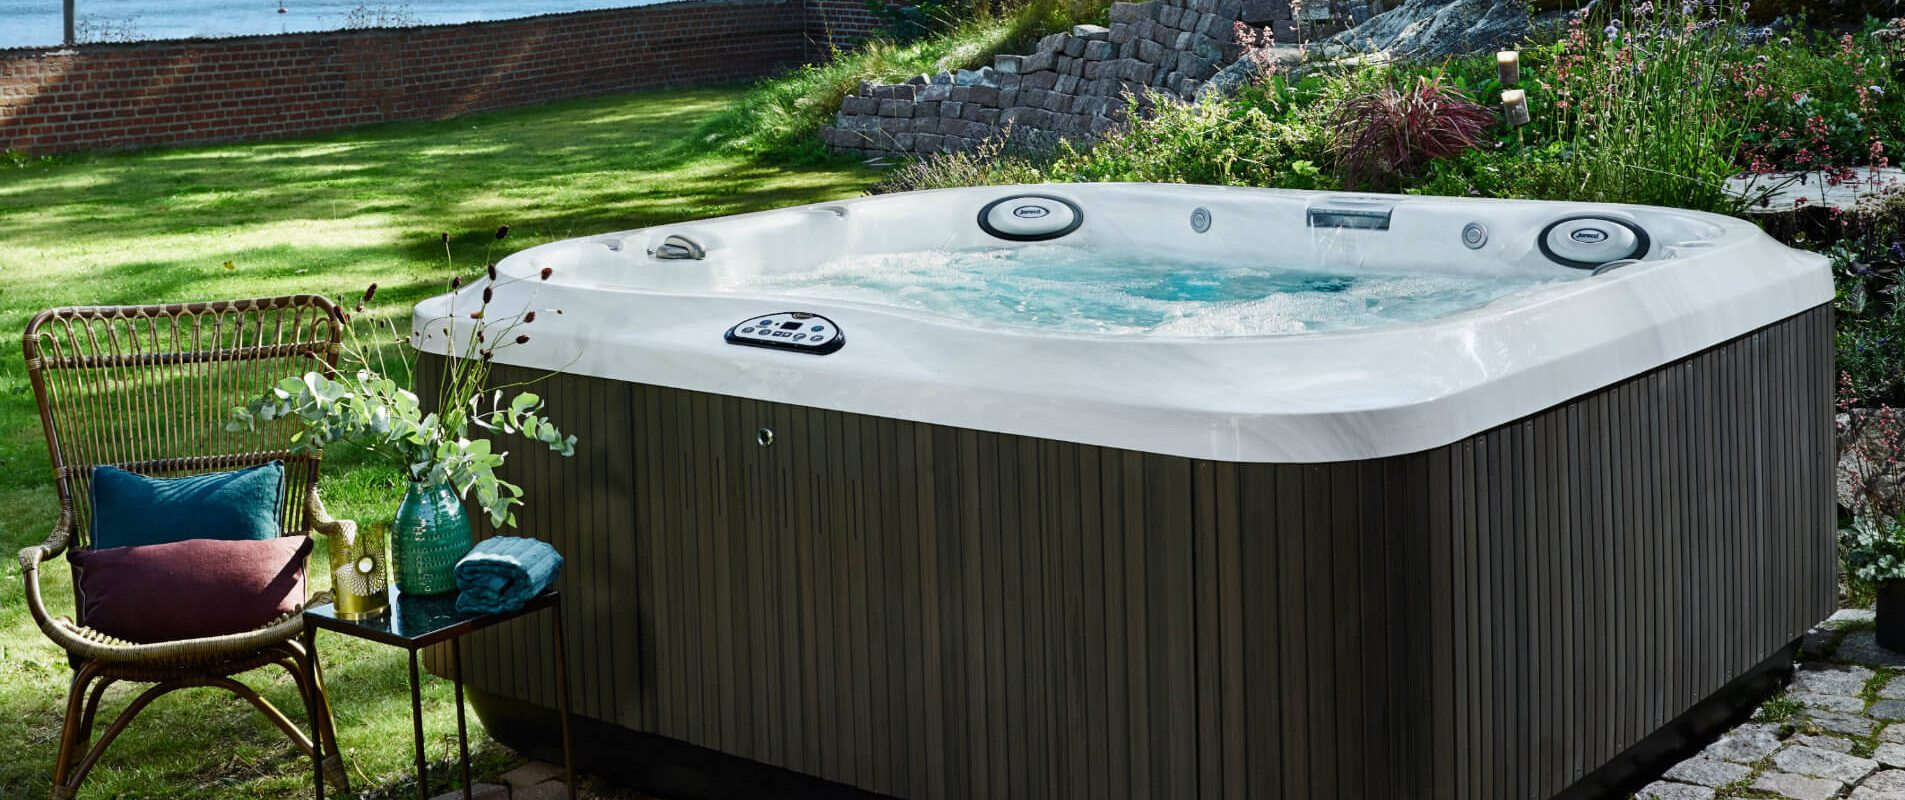 Jacuzzi Es.Jacuzzi J 325 Hot Tub Specs Pricing And Deals In Spain